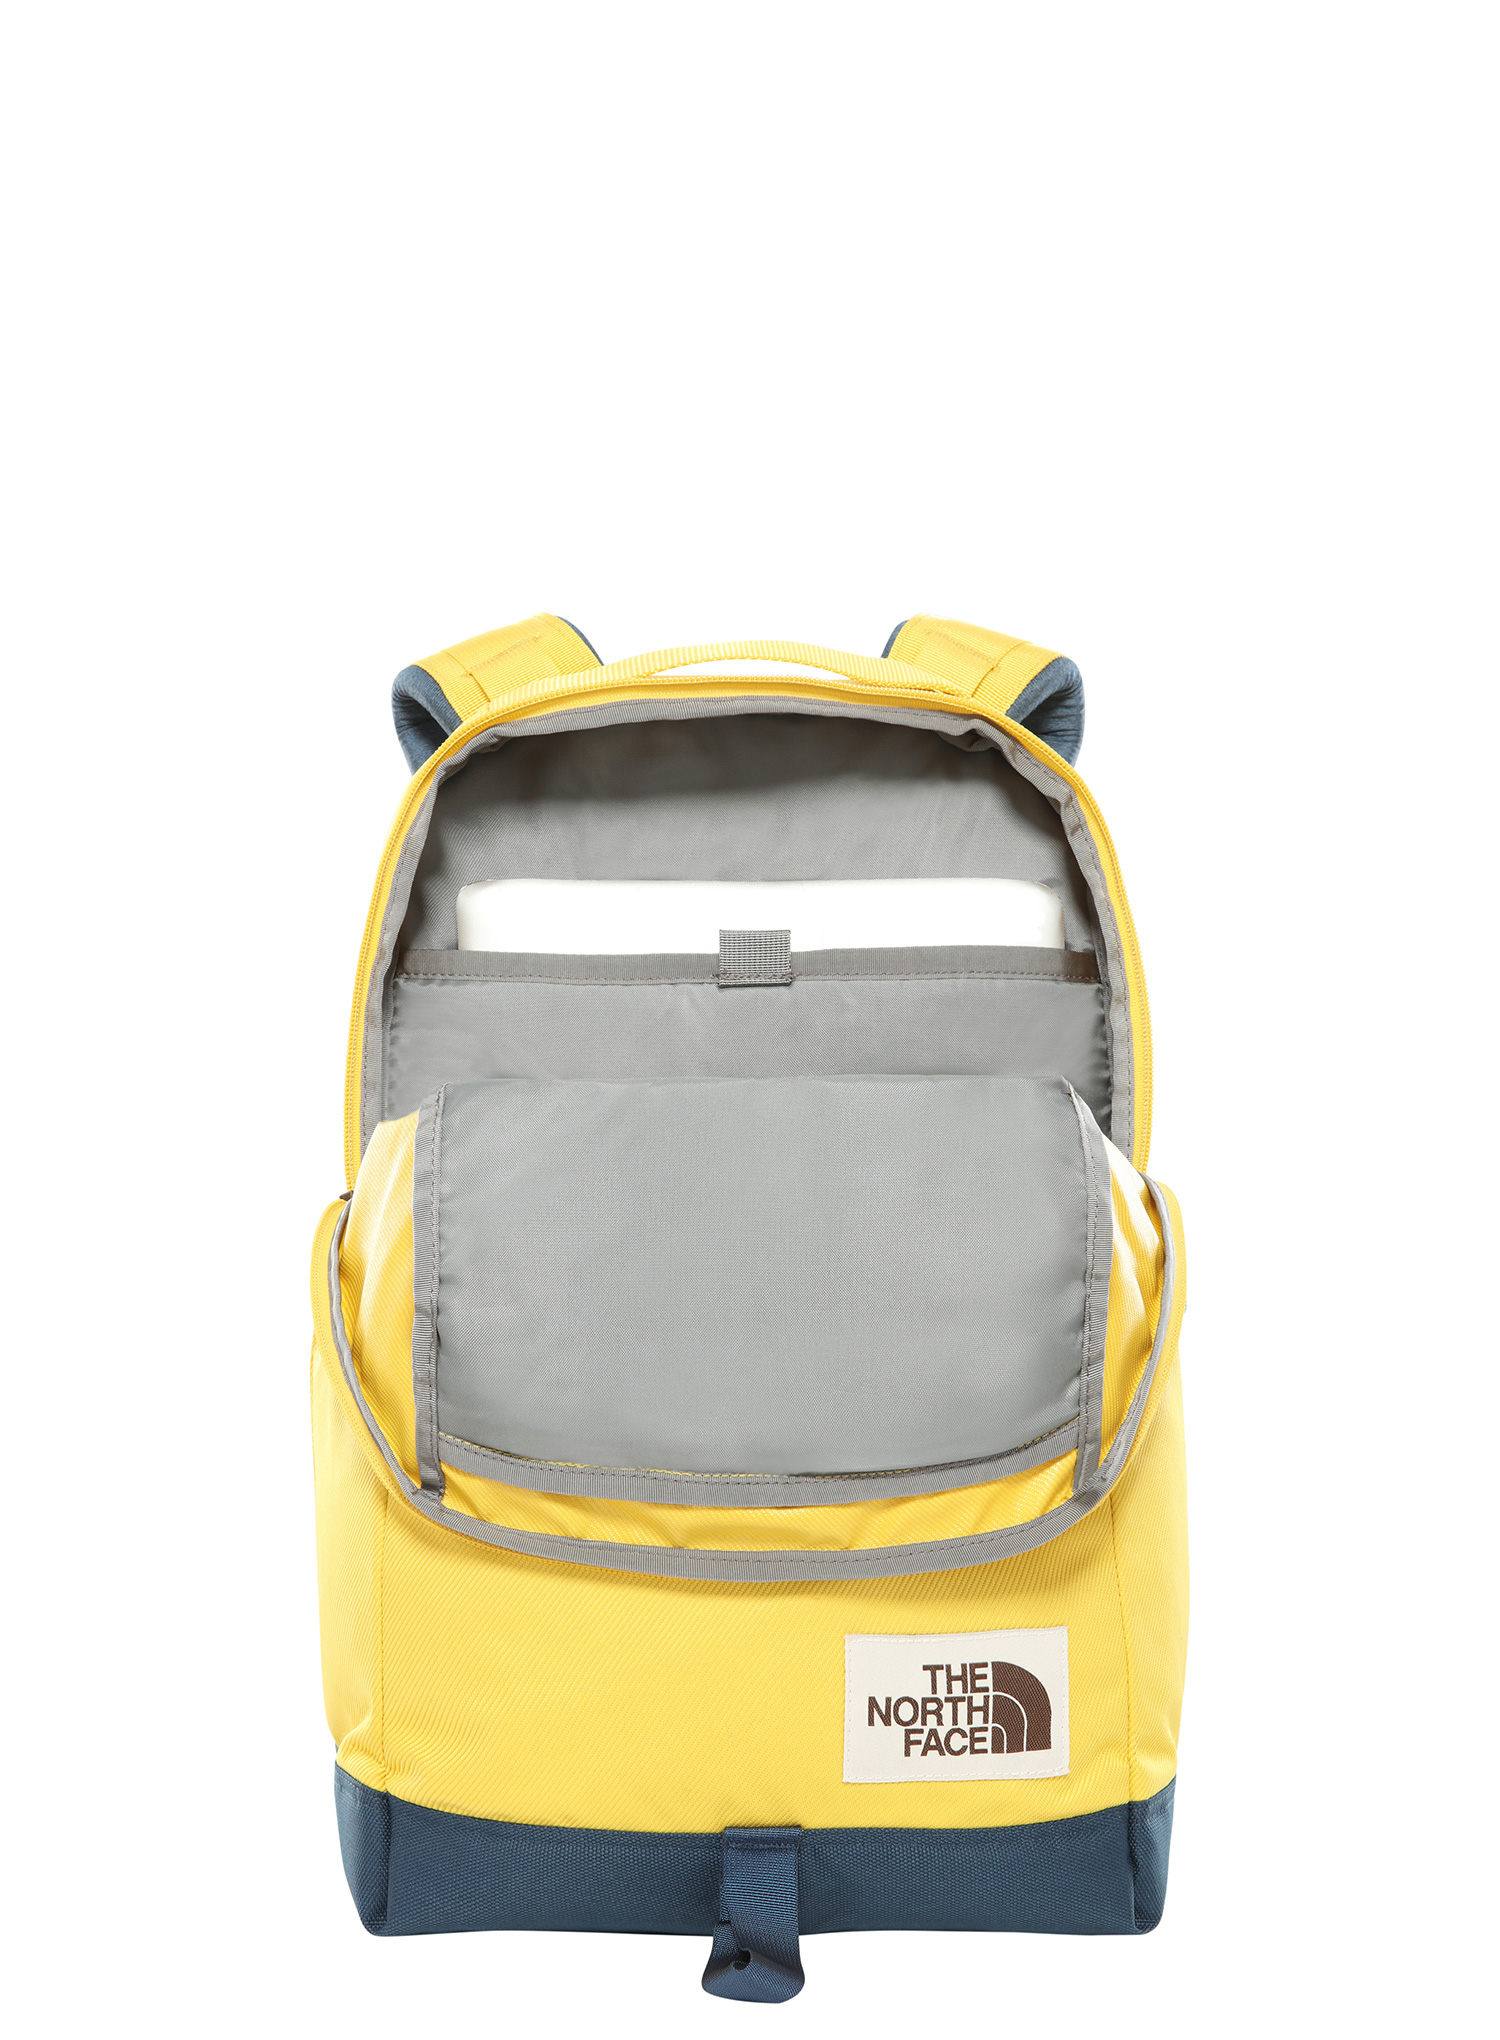 Plecak The North Face Daypack - bamboo yellow/blue - zdjęcie nr. 3